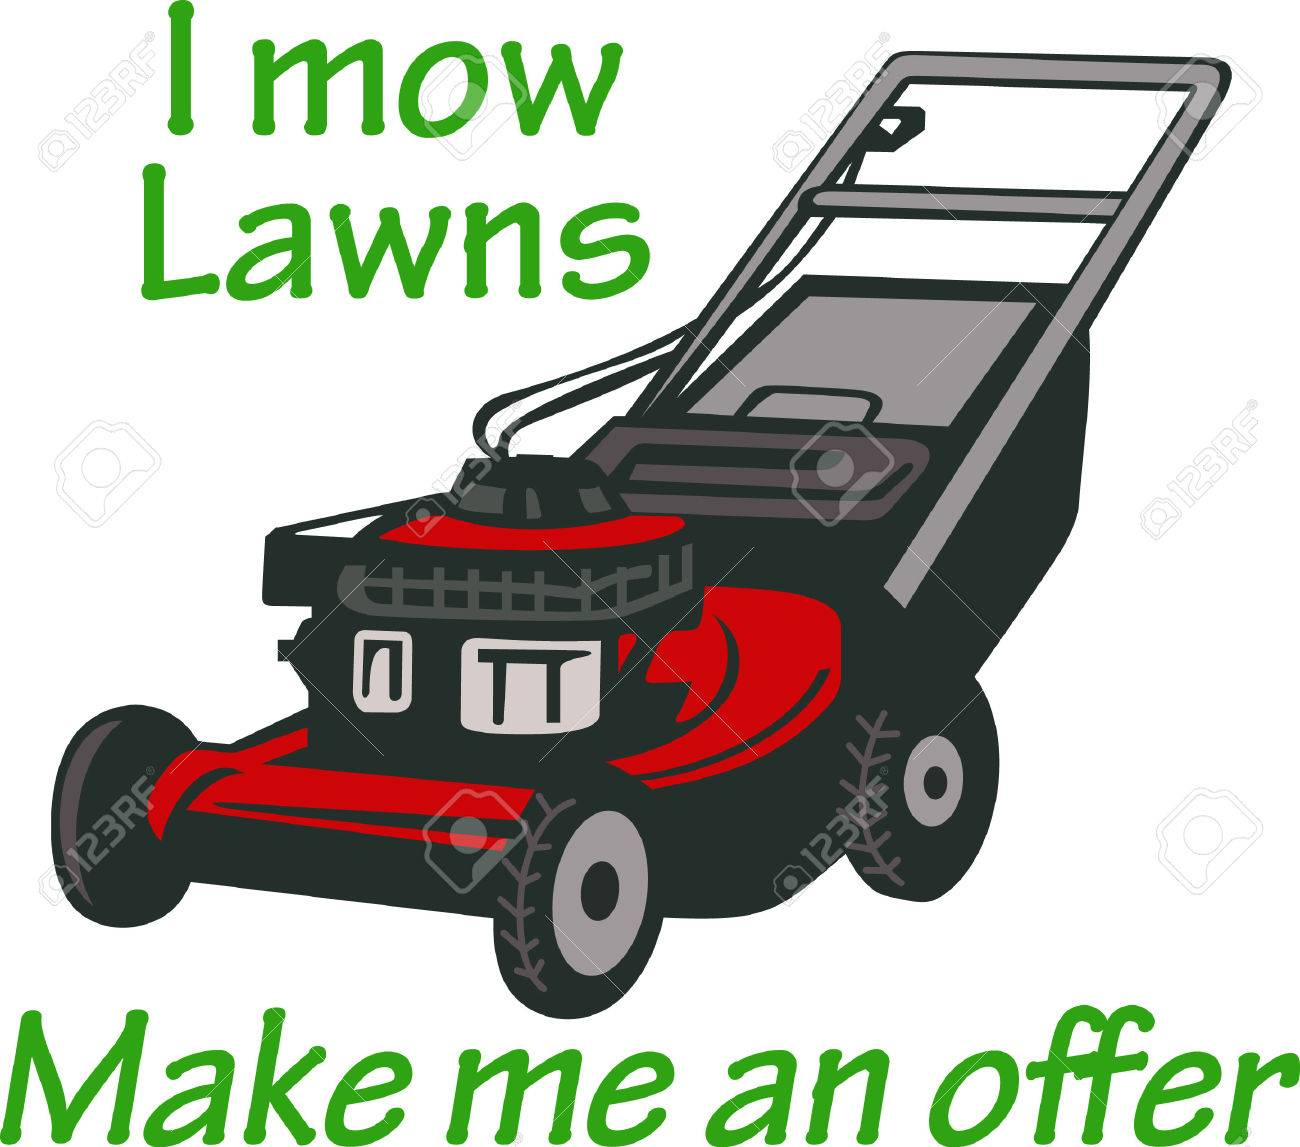 382 Lawn Care Maintenance Stock Vector Illustration And Royalty ...